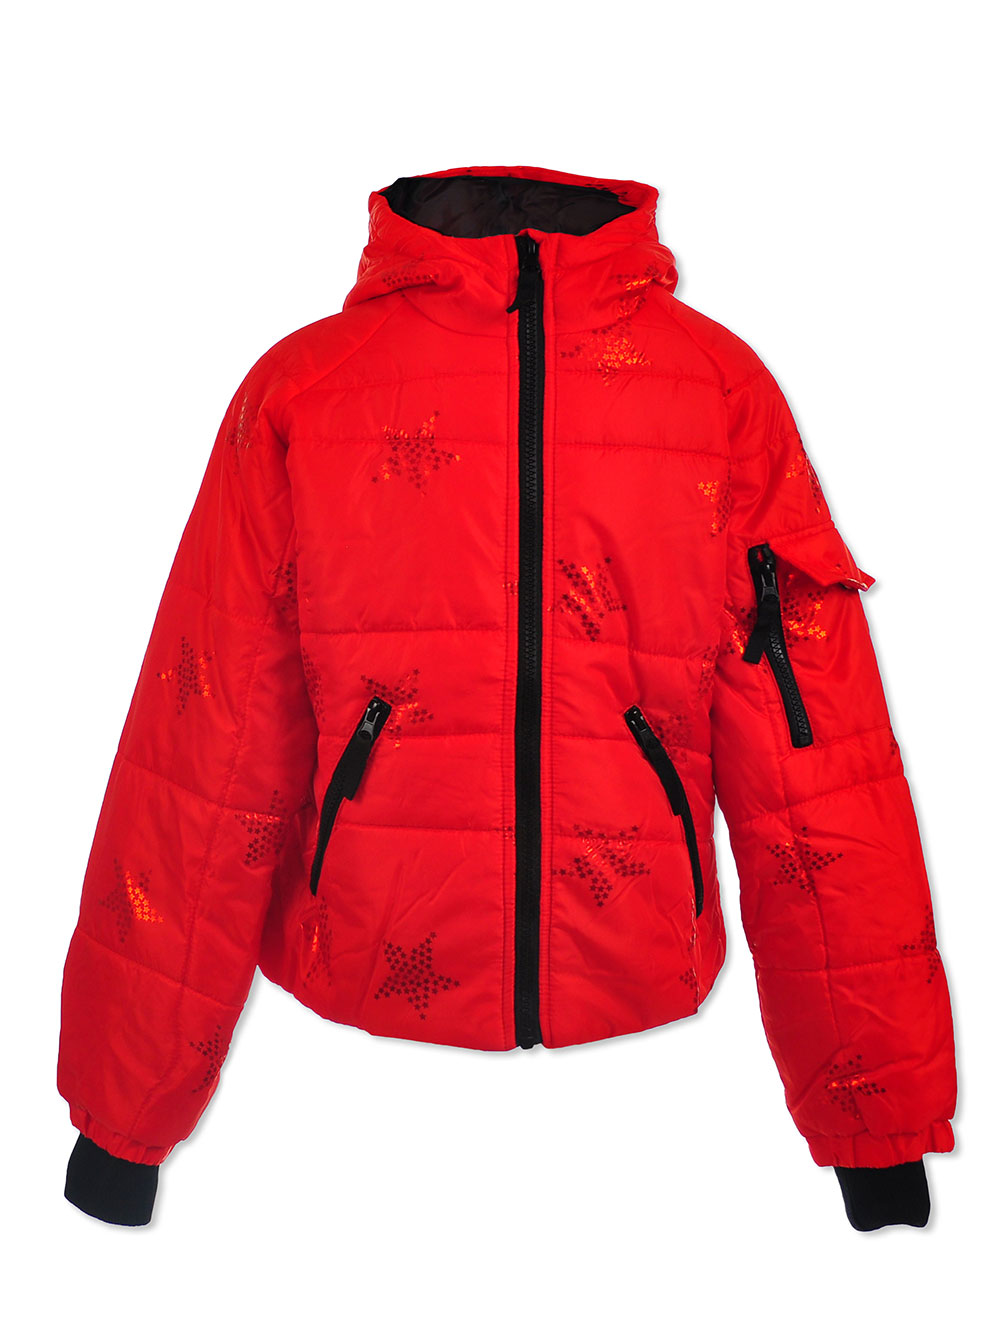 Size 10-12 Jackets Coats for Girls